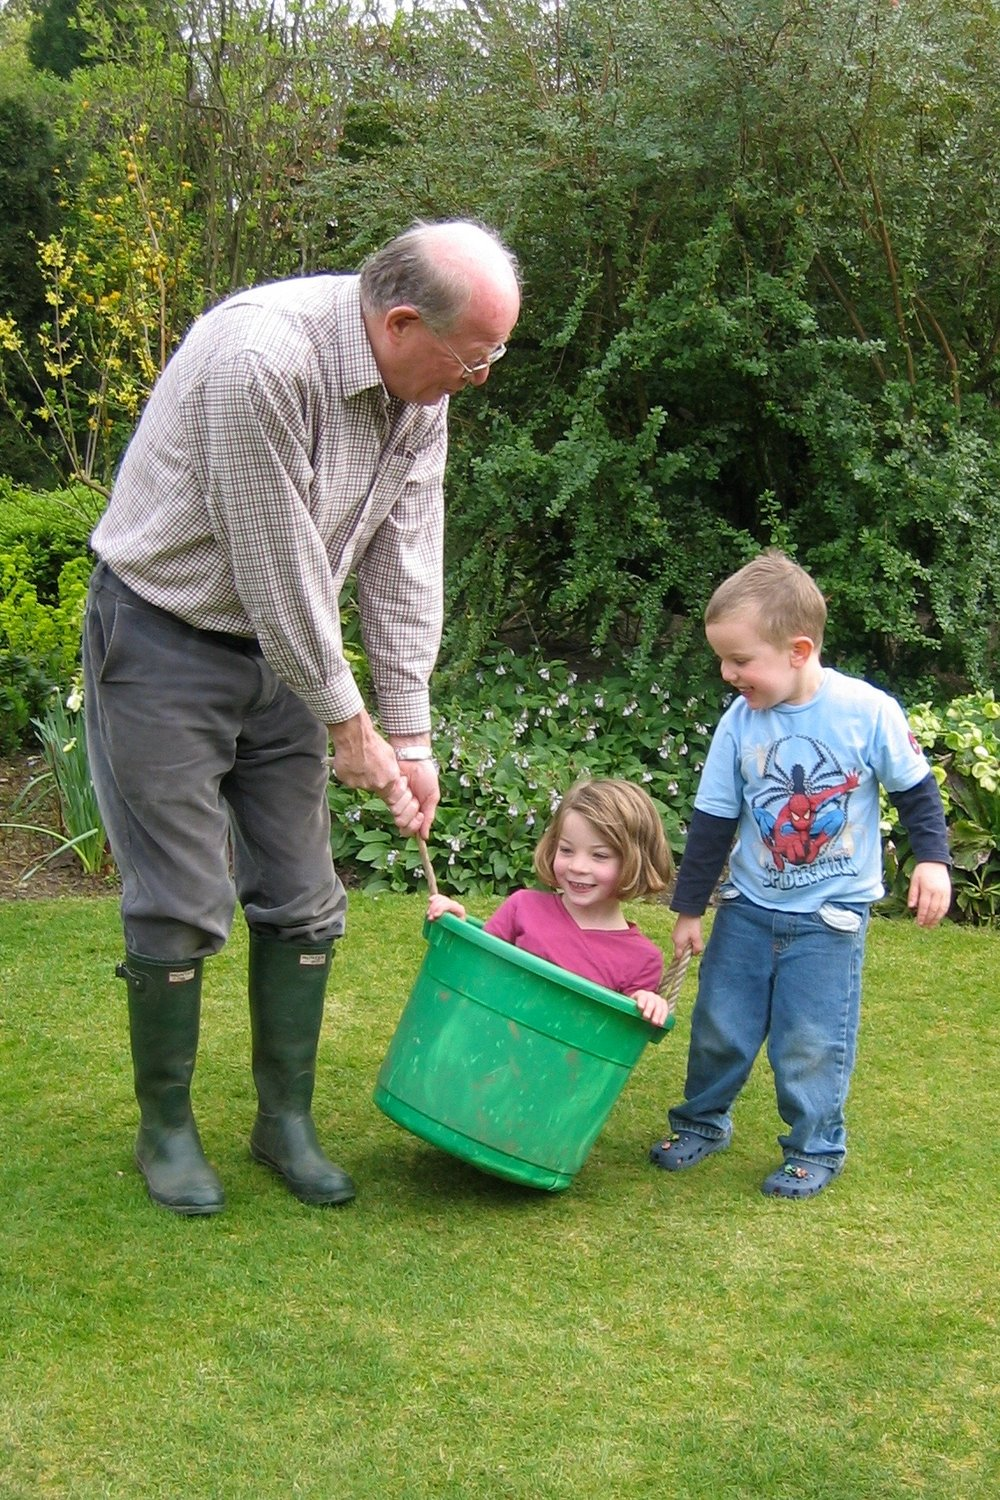 11th April 2007 - one of many segments of Grandad's famous obstacle courses